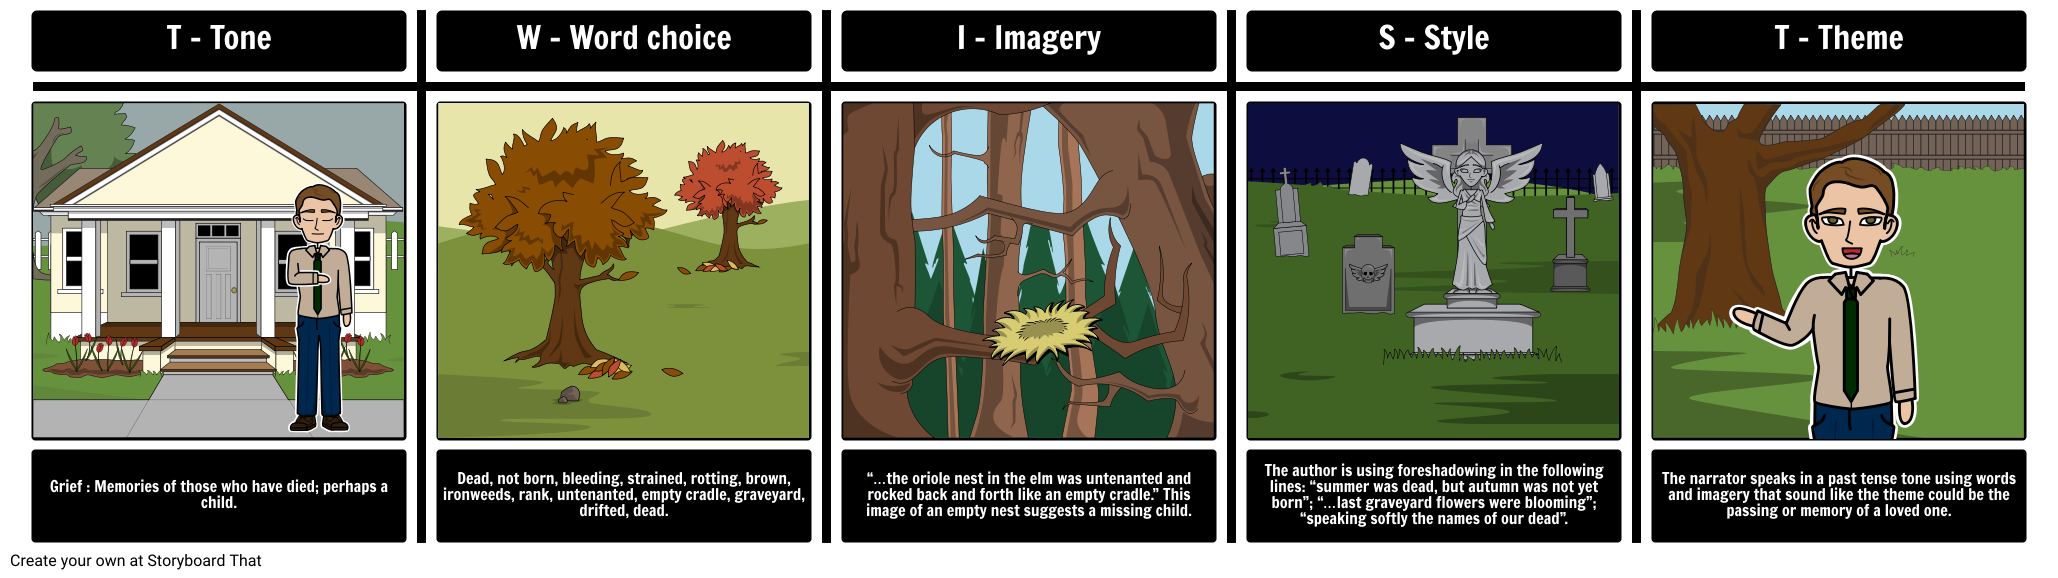 Ibis drawing the bleeding tree. Scarlet summary analysis by